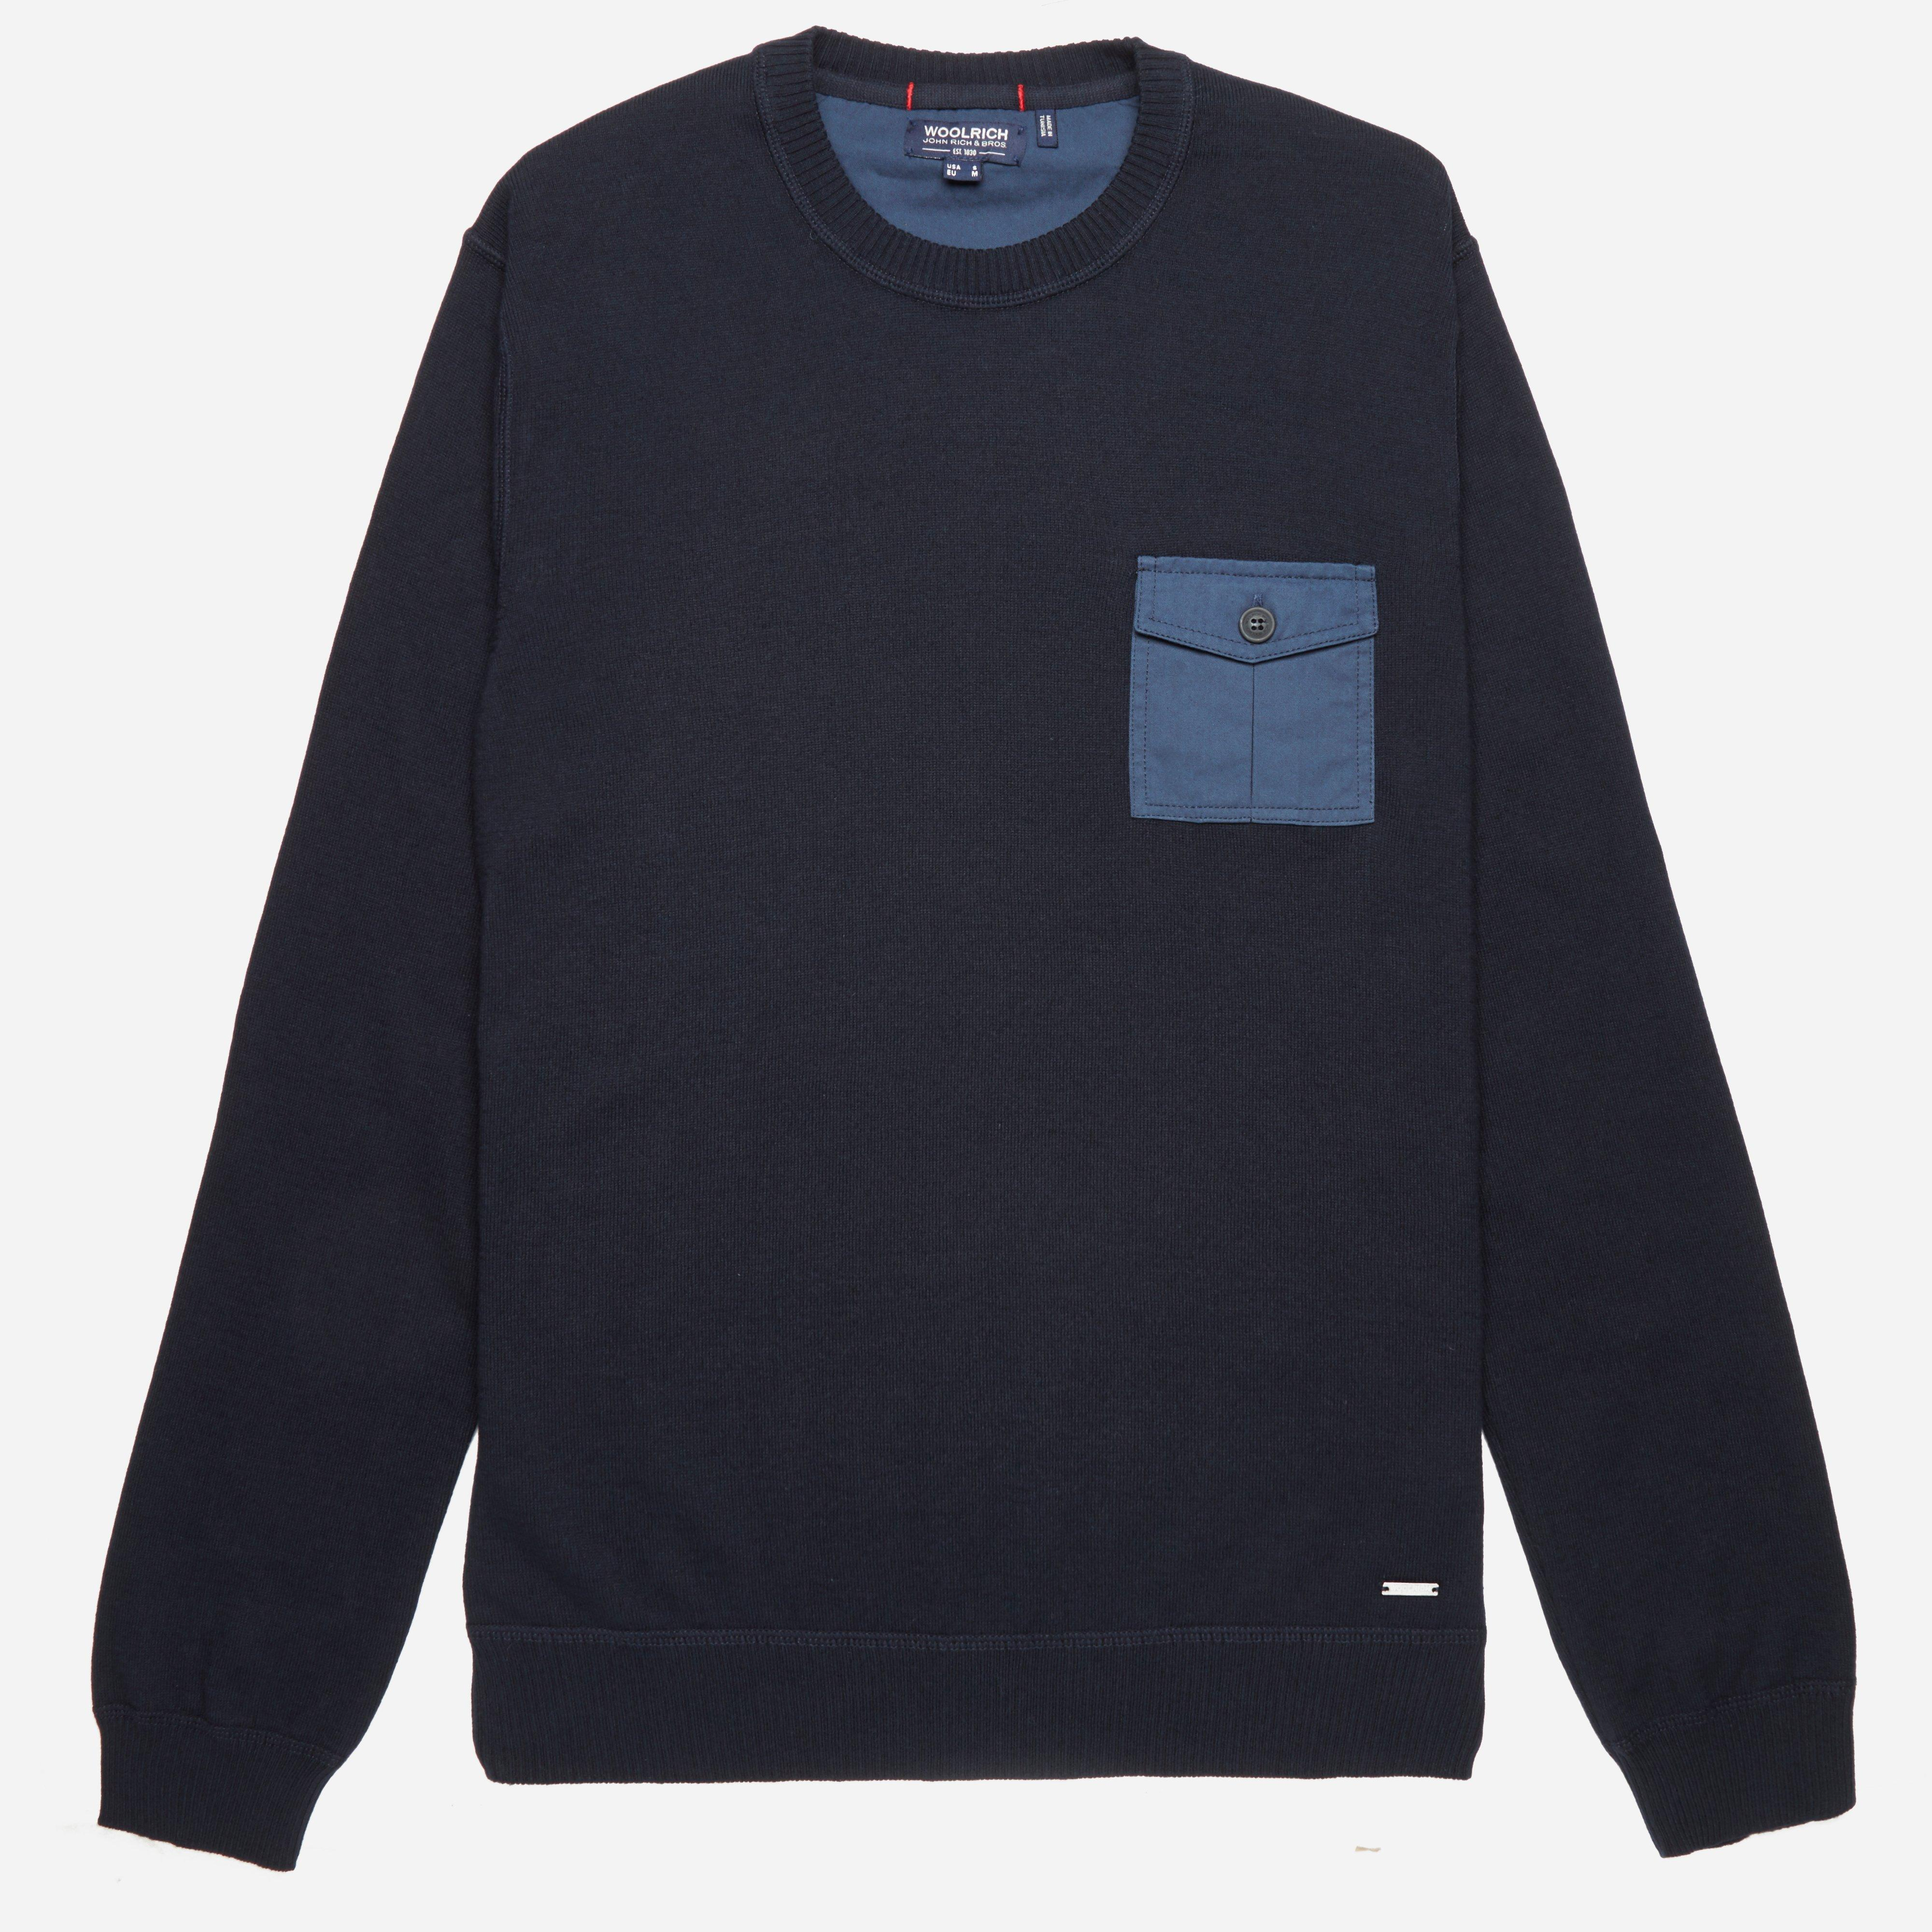 Woolrich Military Cotton Crewneck